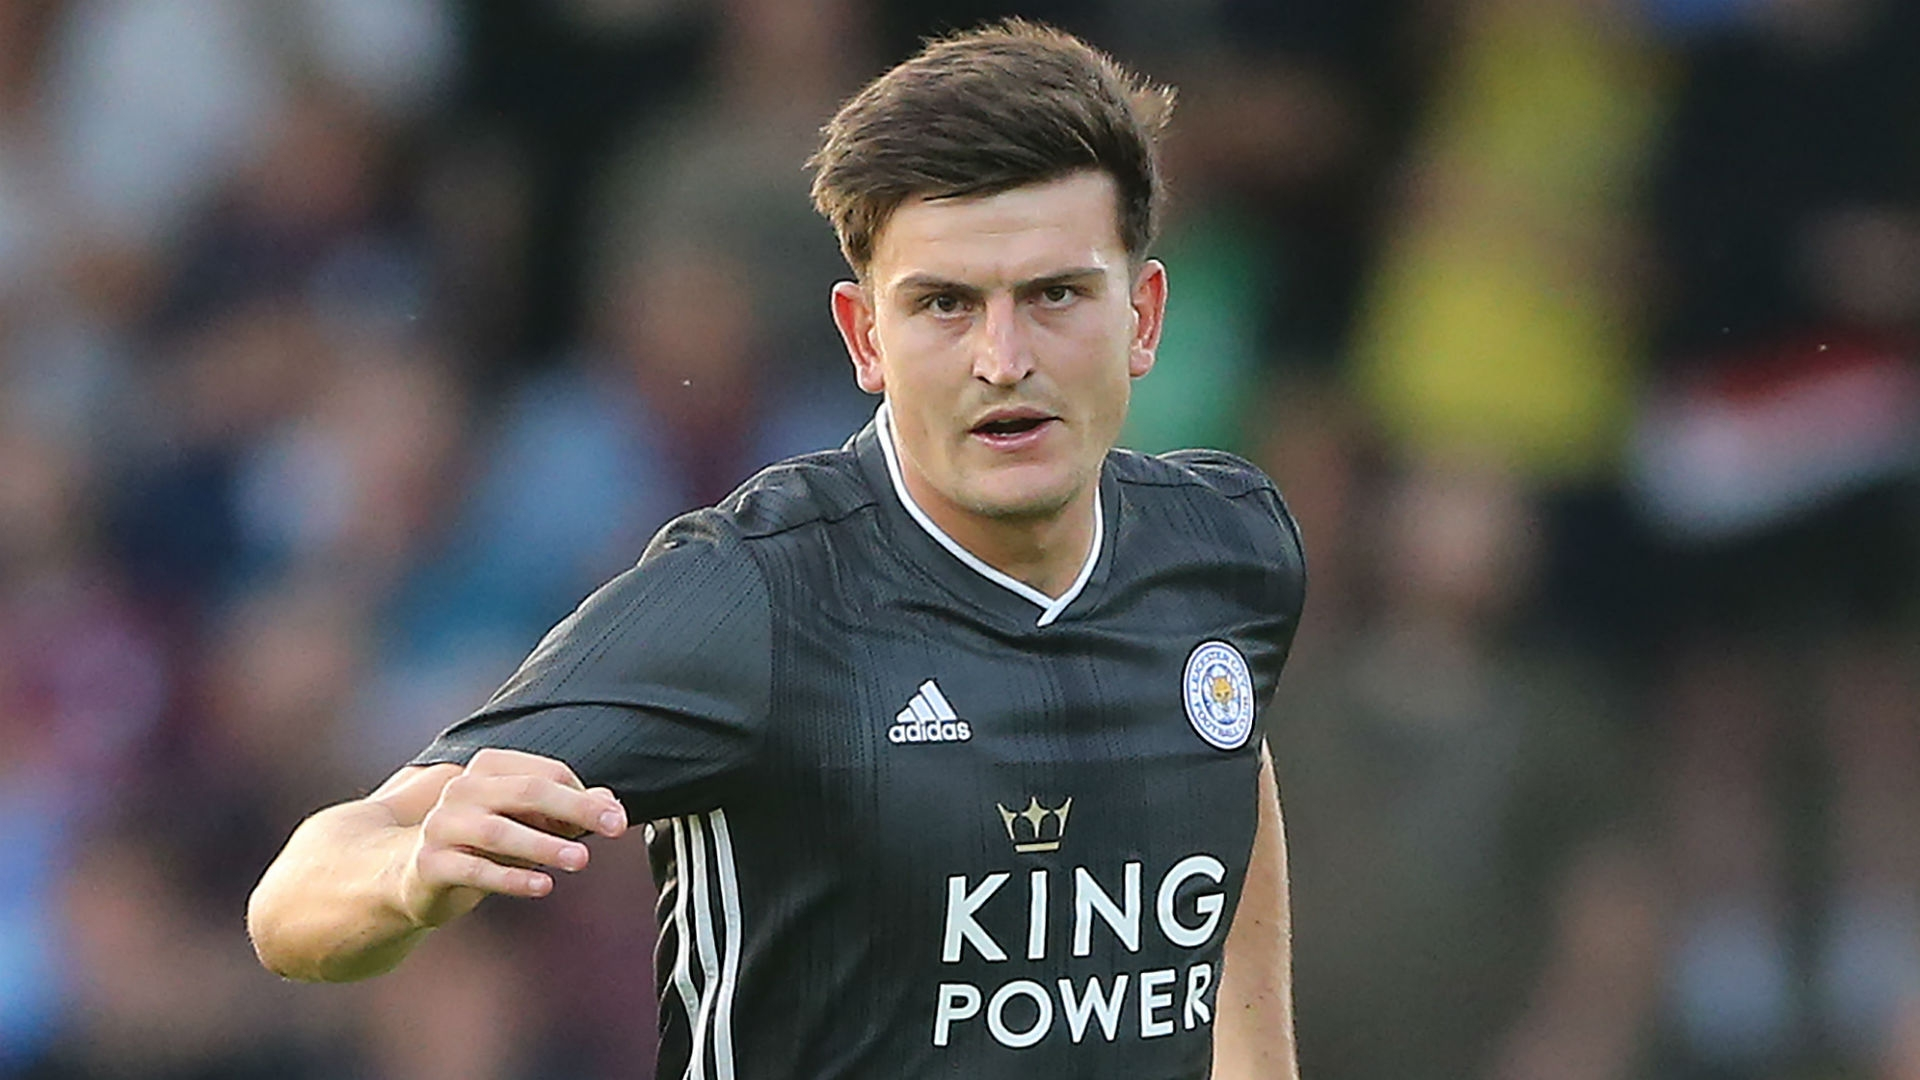 Transfer Harry Maguire Ke Manchester United Tinggal Tunggu Waktu